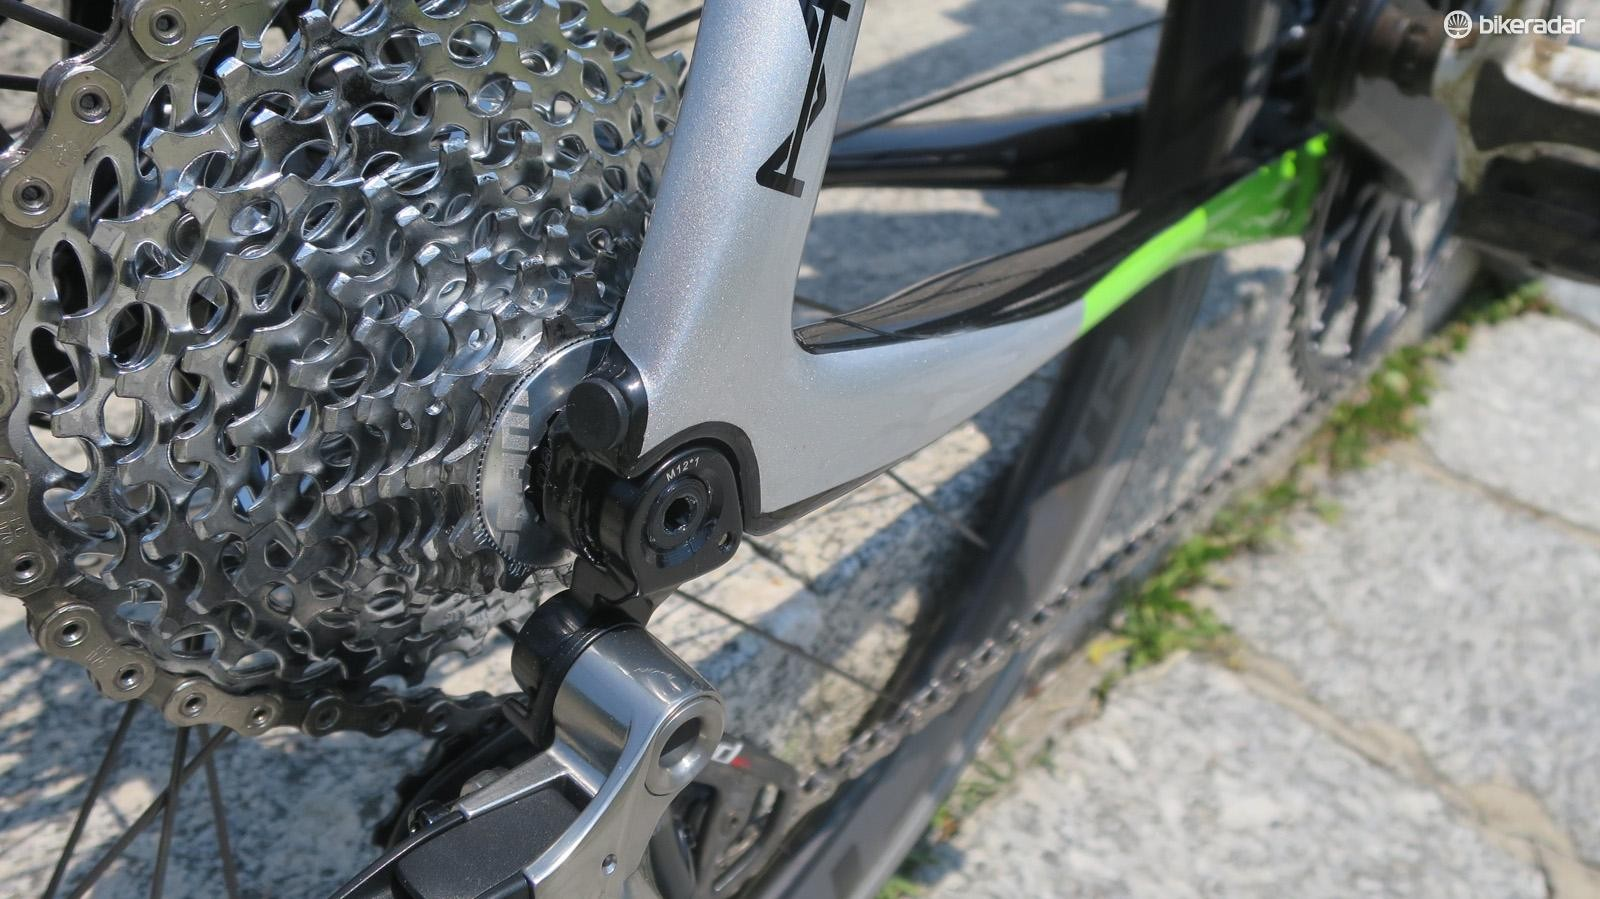 The rear mech hanger is a burly CNC'd aluminium unit borrowed from Cannondale's Beast of the East mountain bike